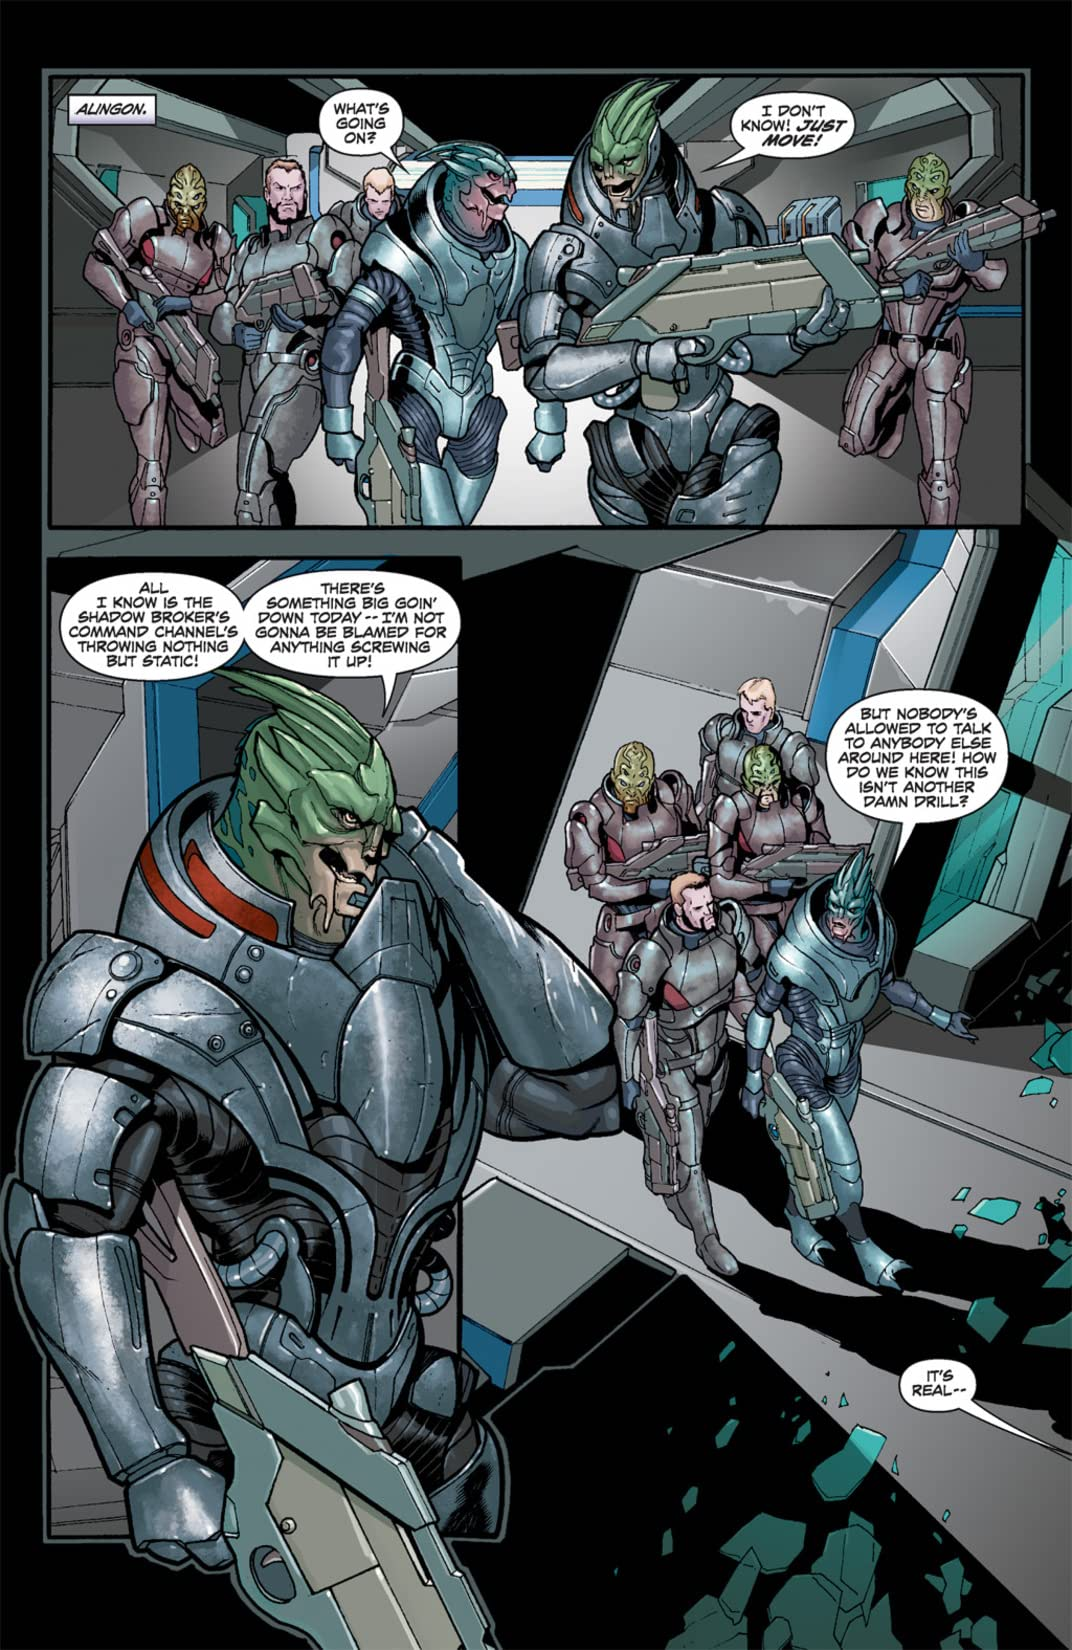 Mass Effect: Redemption #4